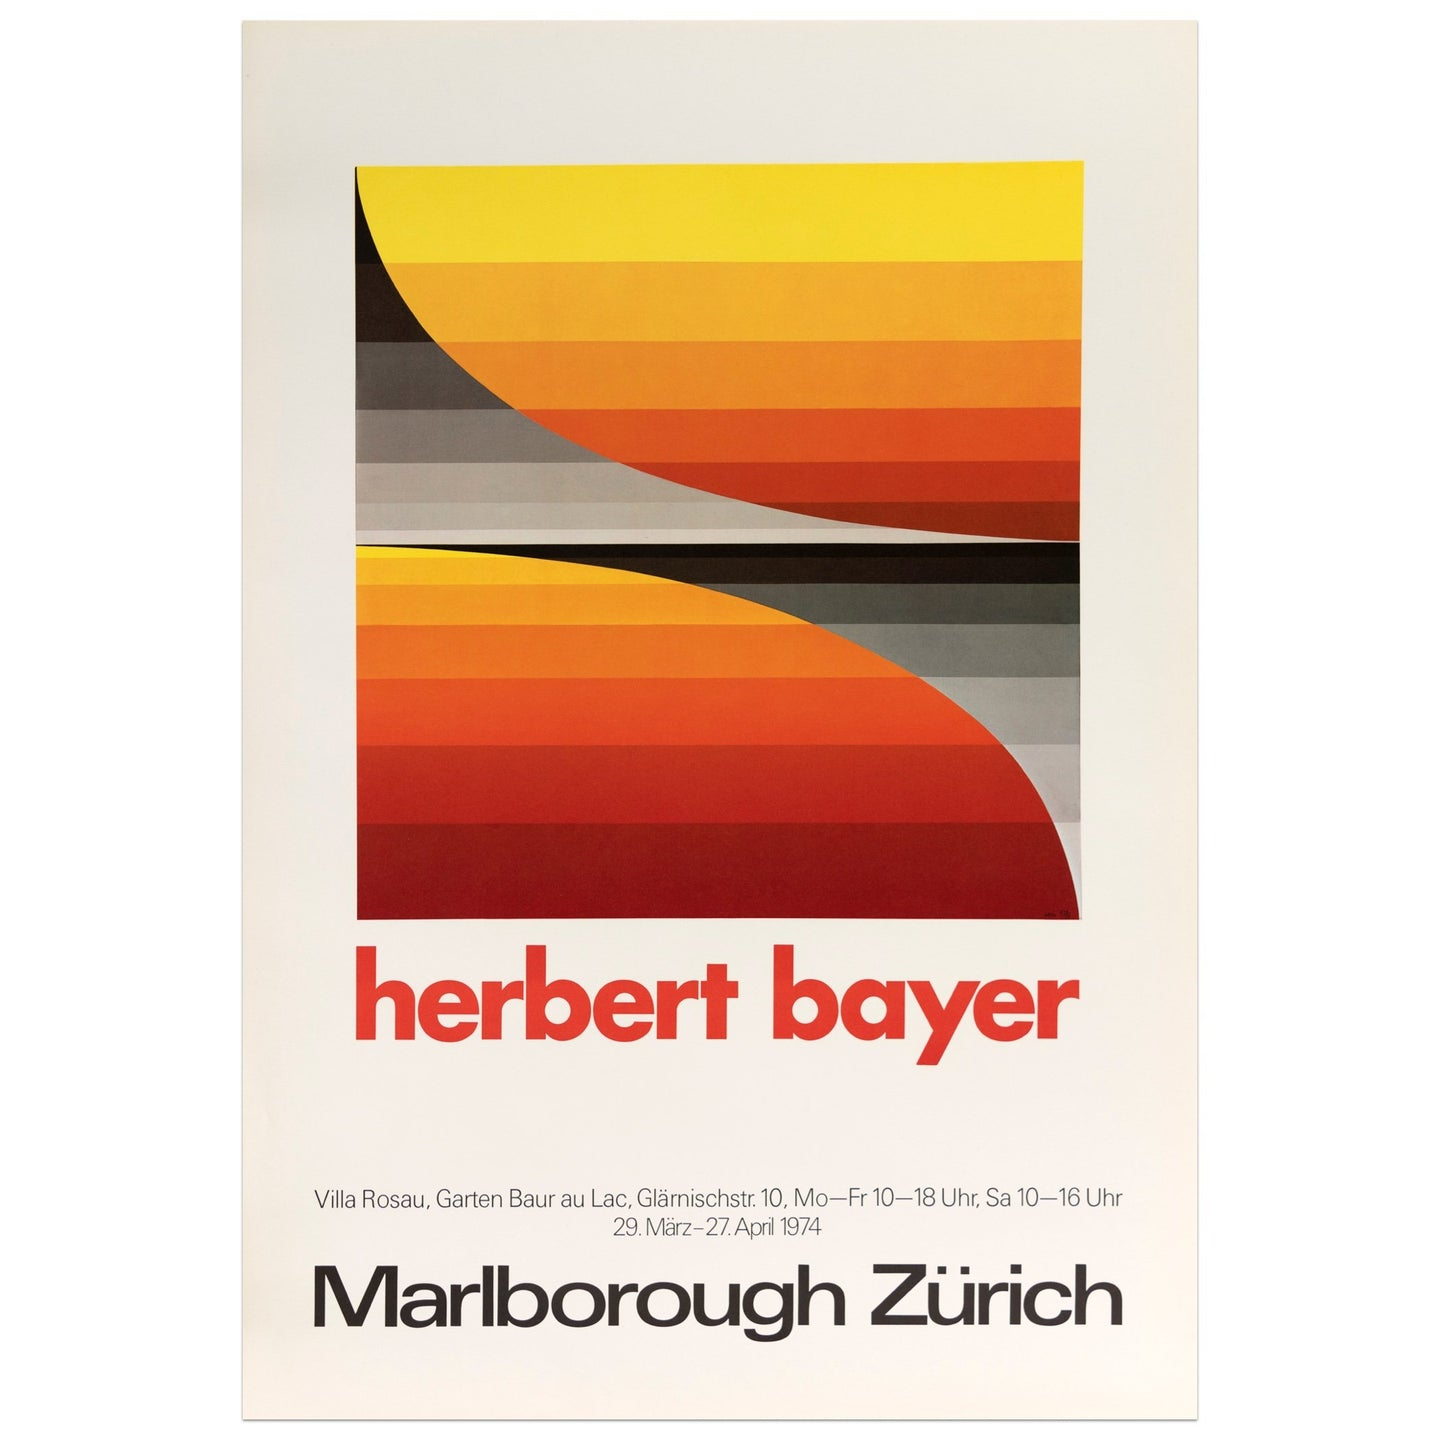 1974 Marlborough Zürich Herbert Bayer poster featuring a red to yellow and black to gray gradient